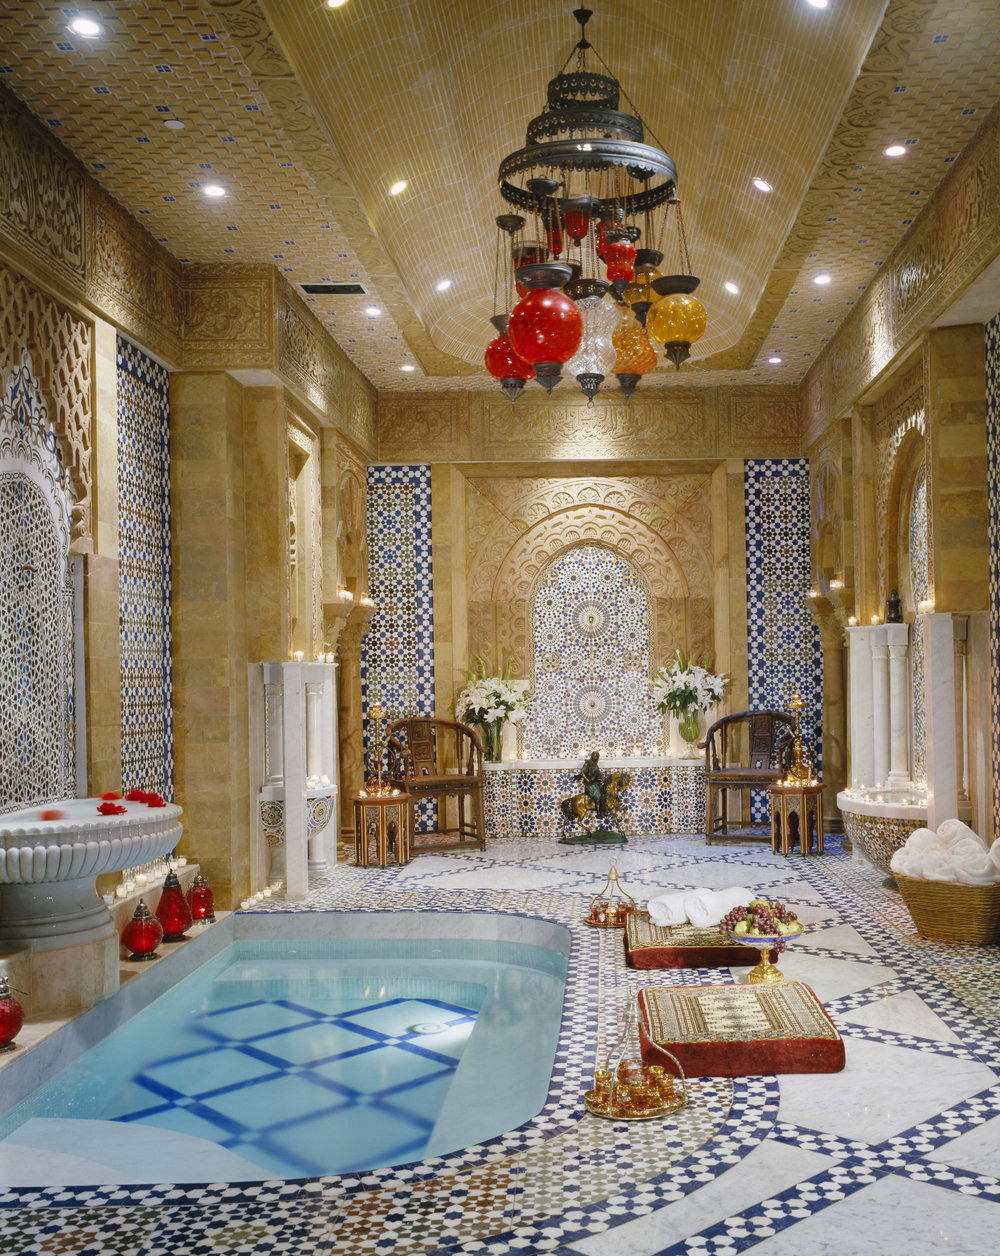 Hammam (Turkish Bath) with fountains and artisanal tile work in this home in Bel Air, Los Angeles.[1000×1256]